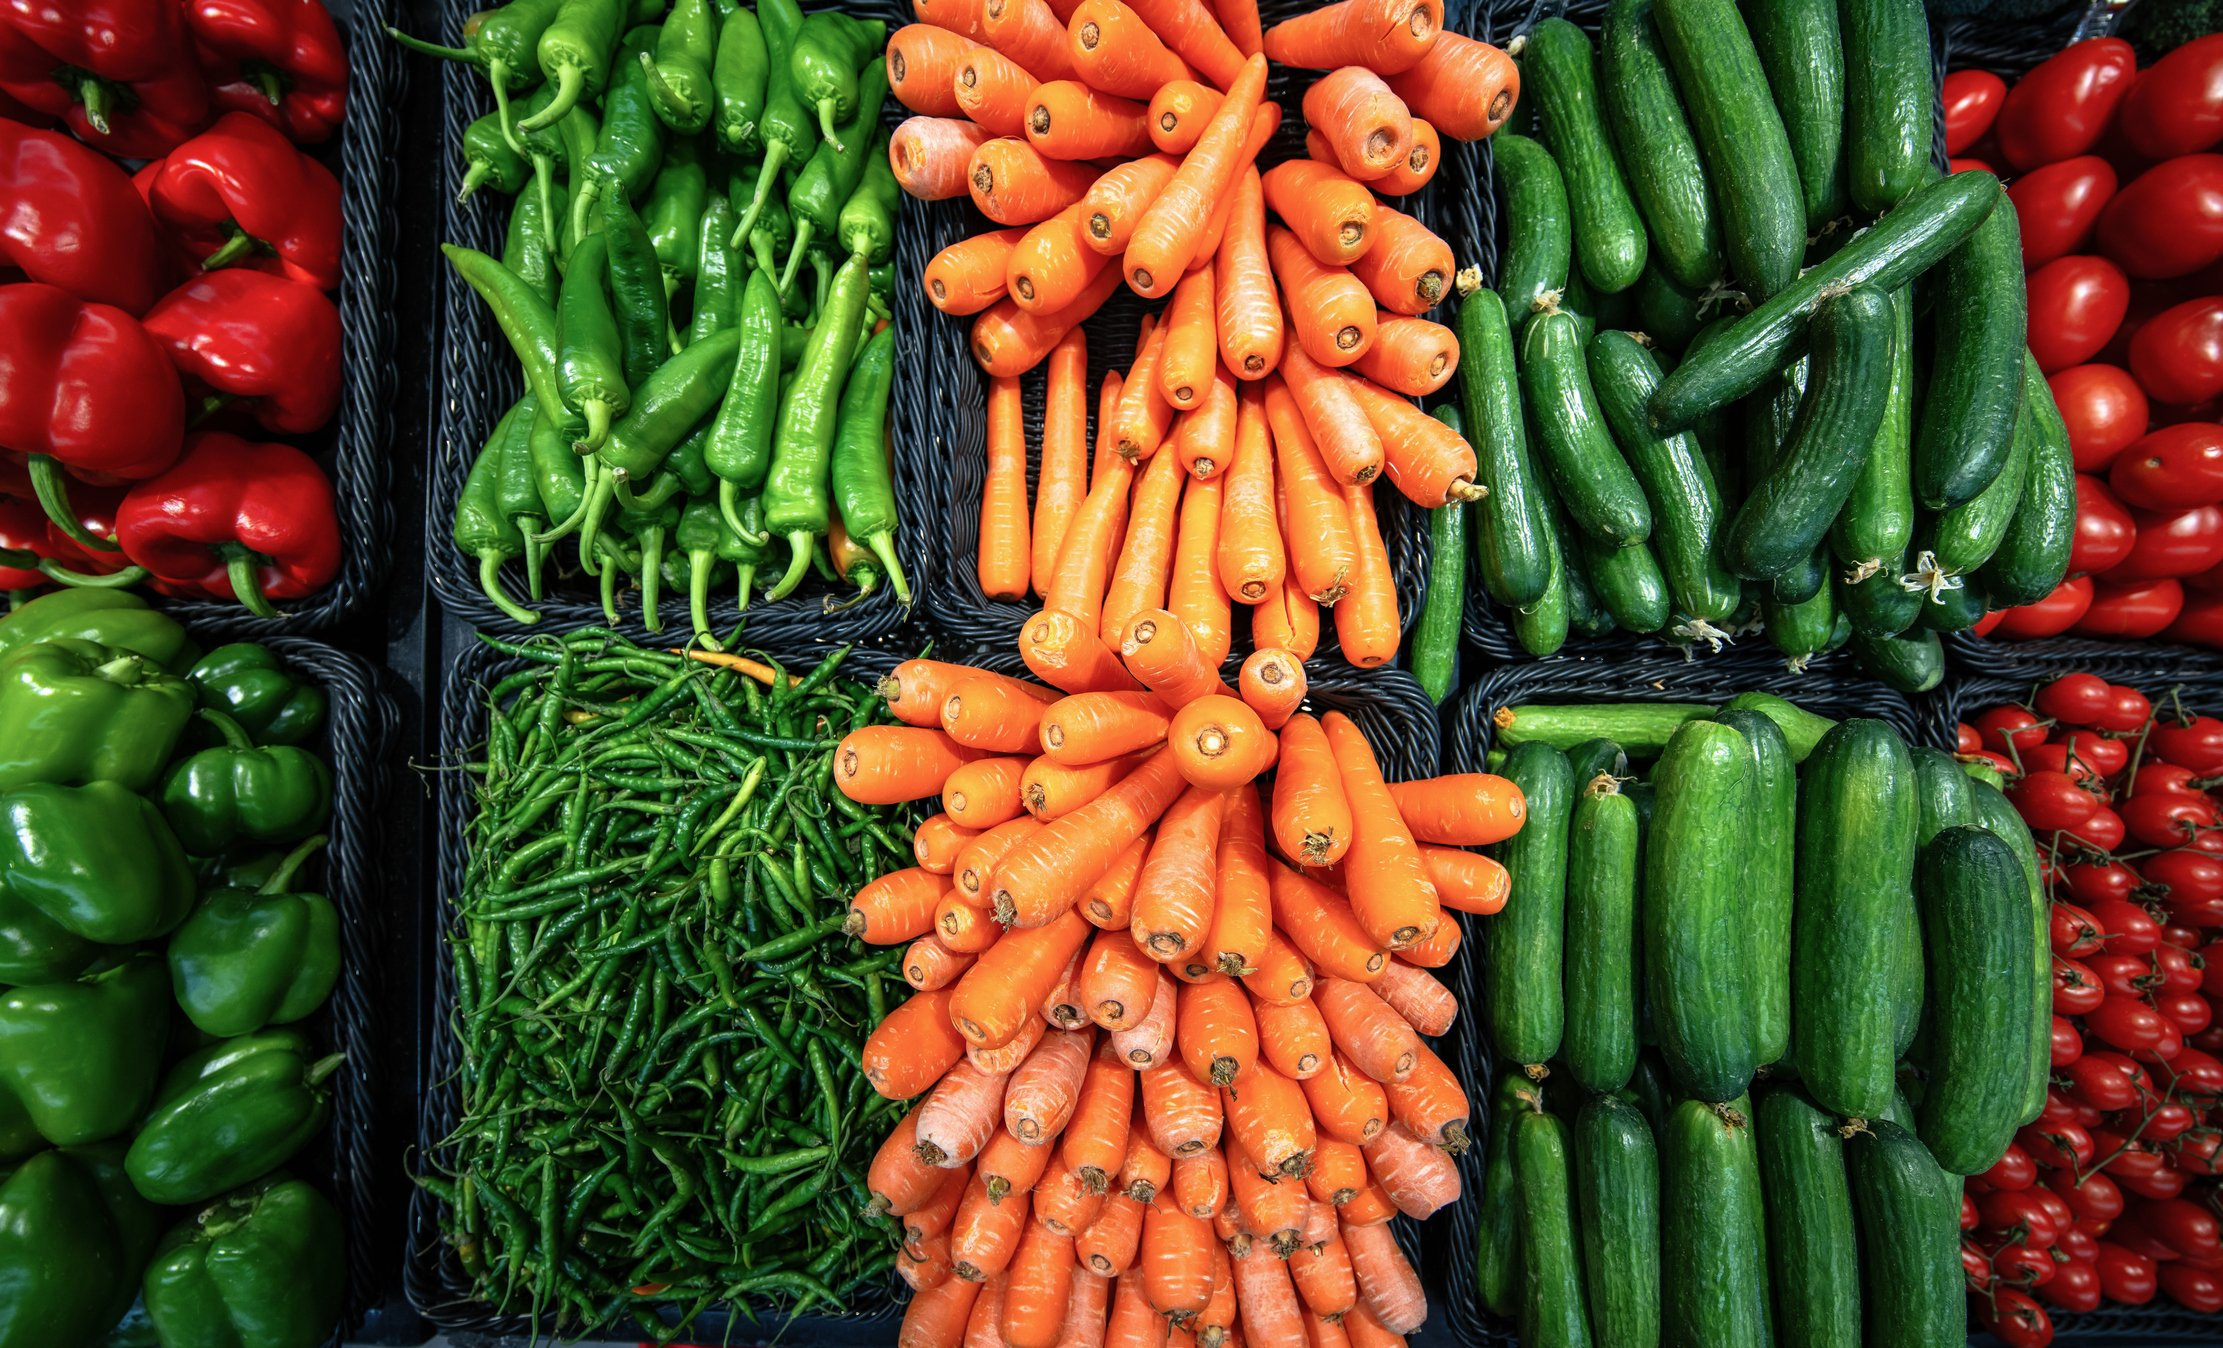 Fresh and colourful vegetables   Photo: Getty Images